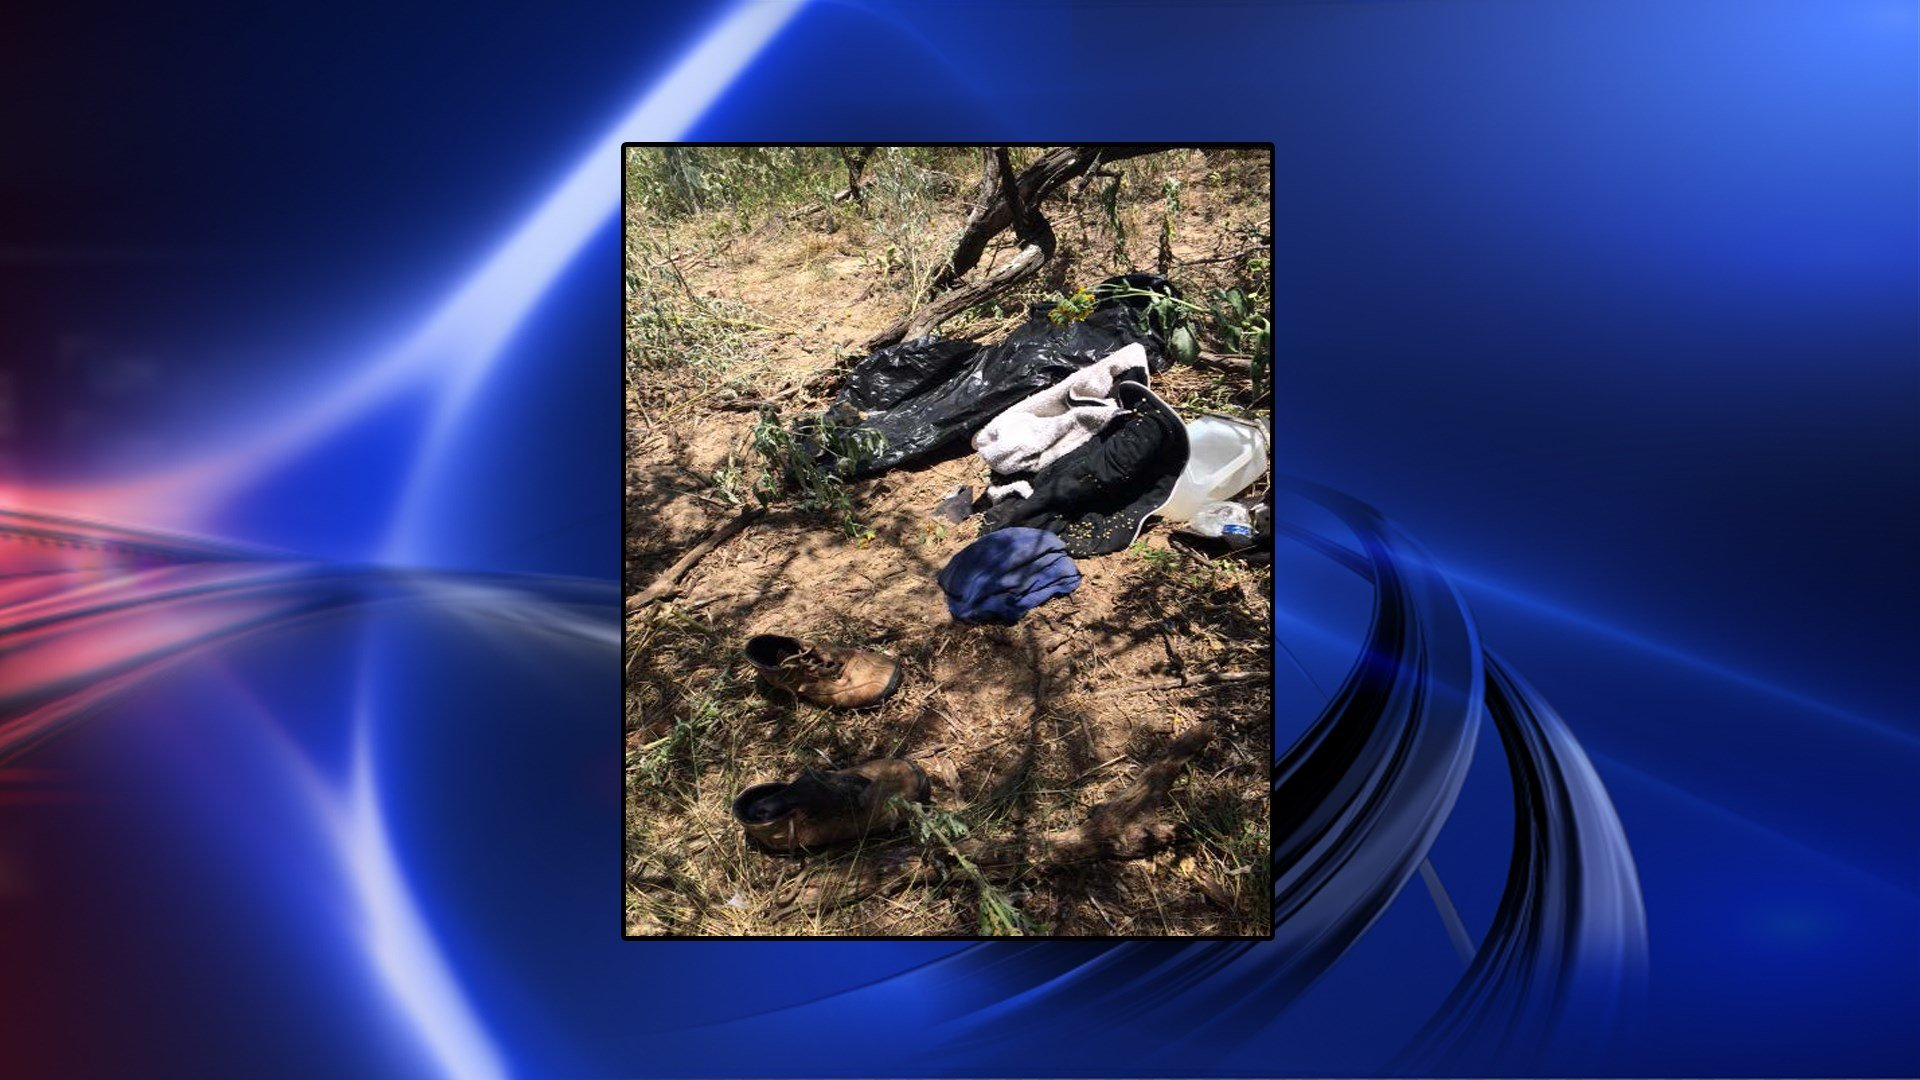 These items belonged to an undocumented immigrant who is believed to have succumbed to the heat